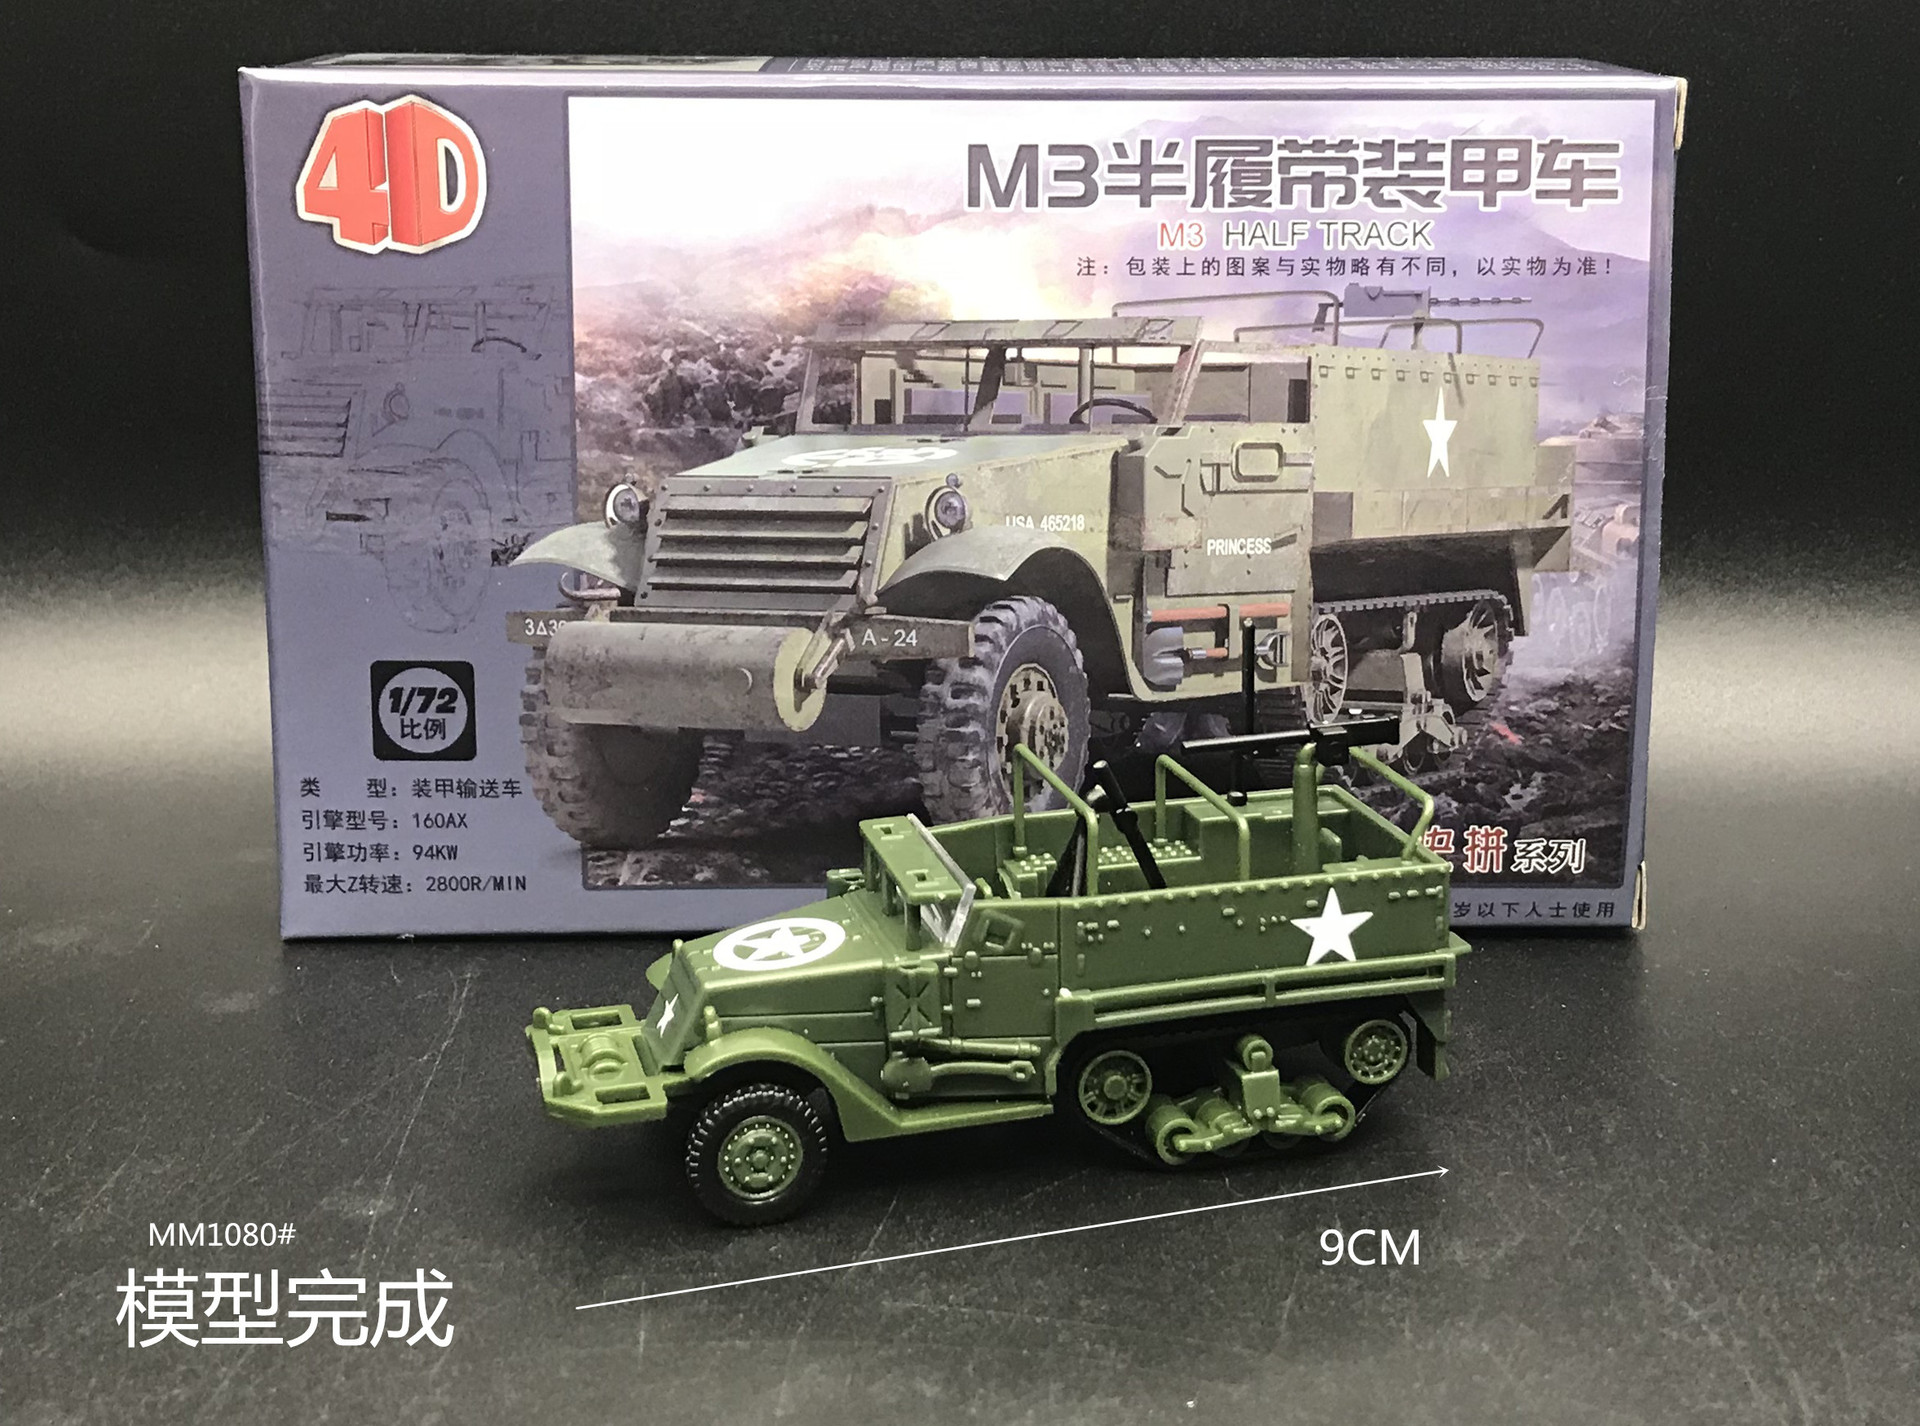 1:72 U.S. M3 Half-track Armored Personnel Carrier Plastic Assemble Military Model